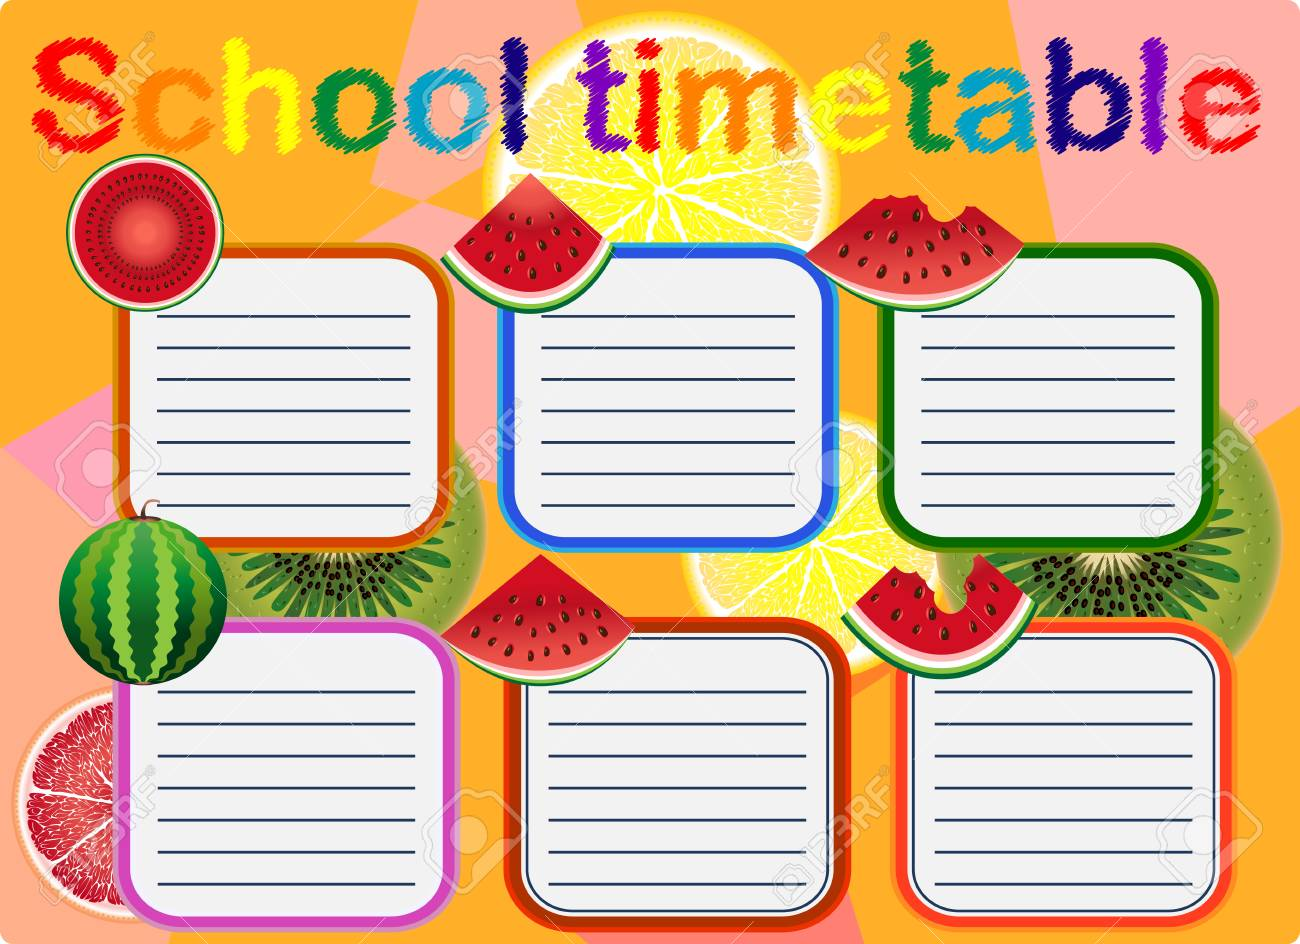 school timetable a weekly curriculum design template scalable